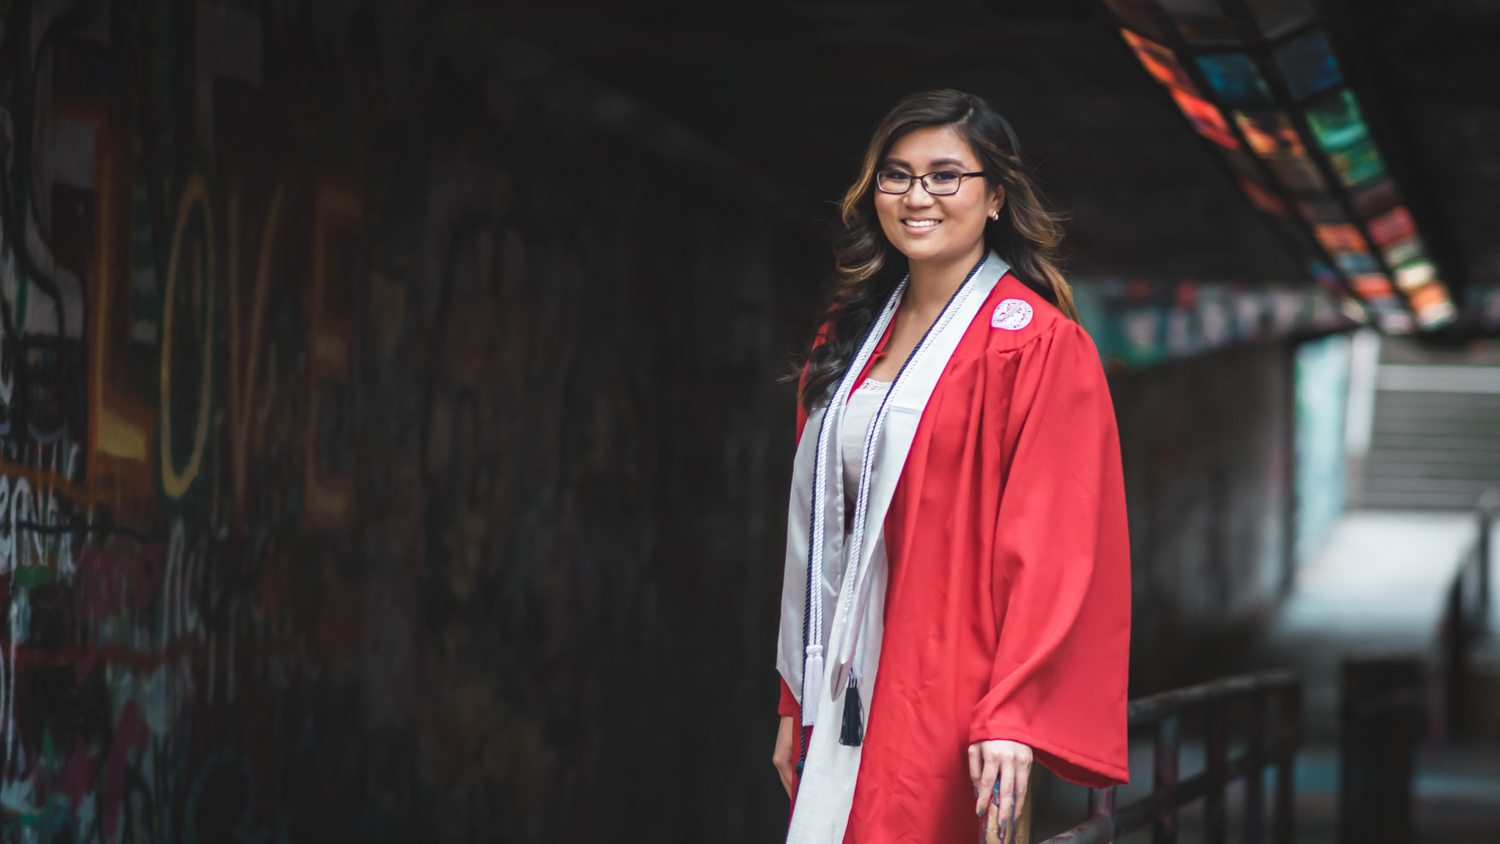 Meilin Walker at commencement